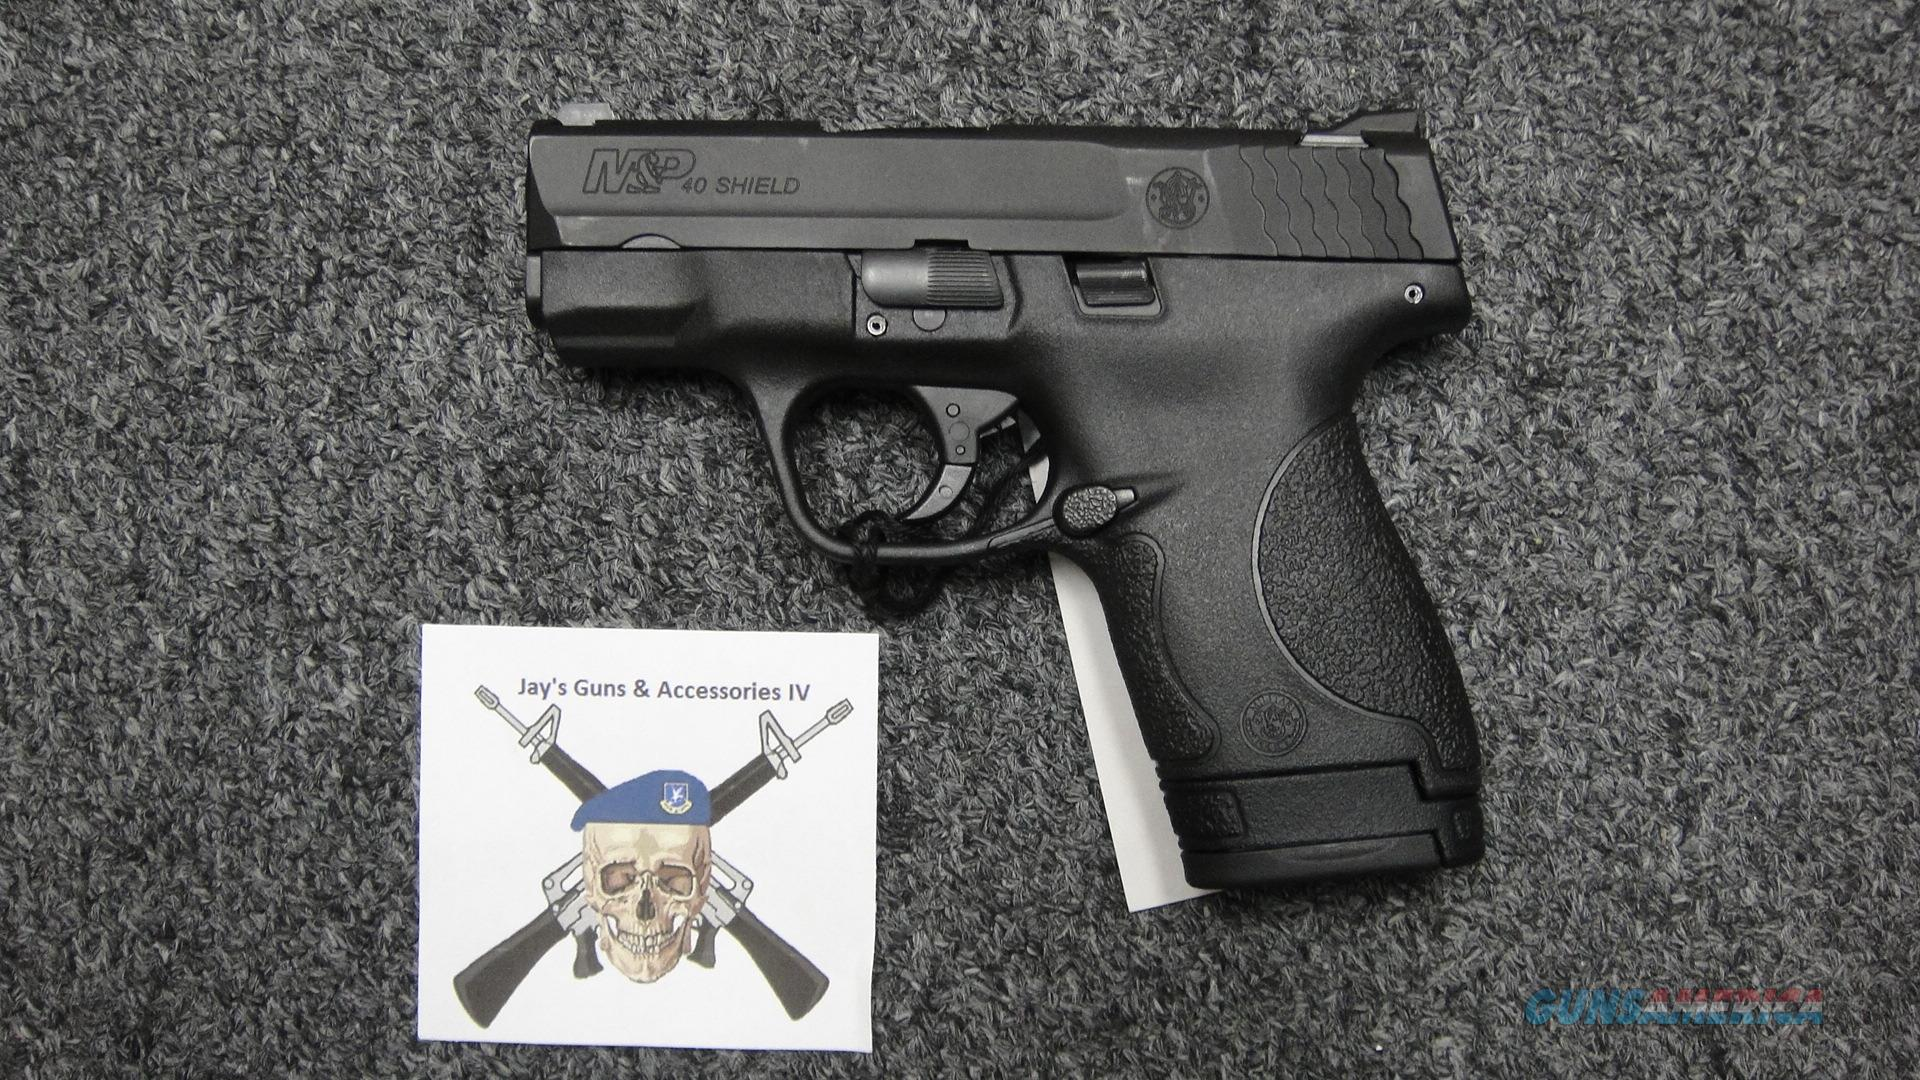 Smith & Wesson M&P 40 Shield No Manual Safety  Guns > Pistols > Smith & Wesson Pistols - Autos > Shield